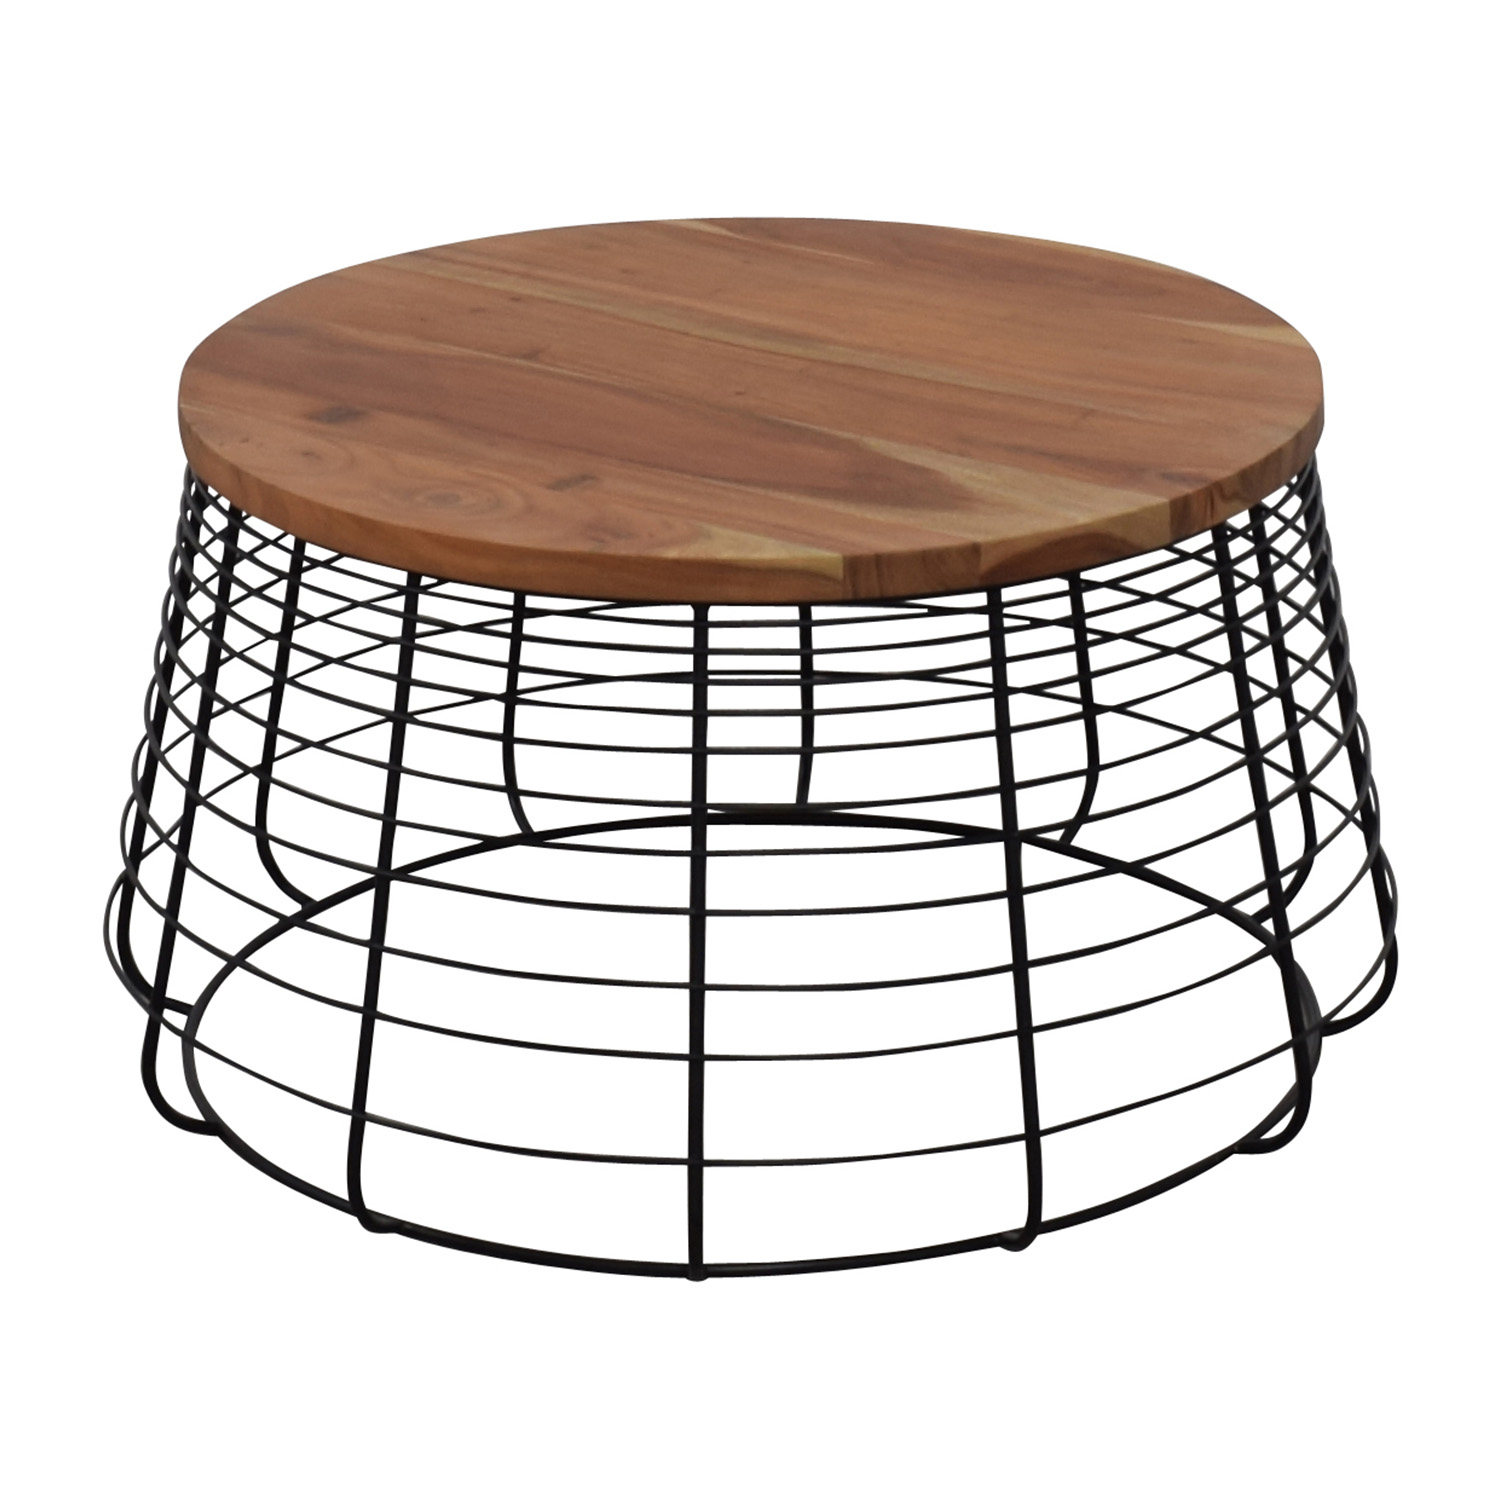 72% OFF - CB2 CB2 Round Wire Coffee Table / Tables